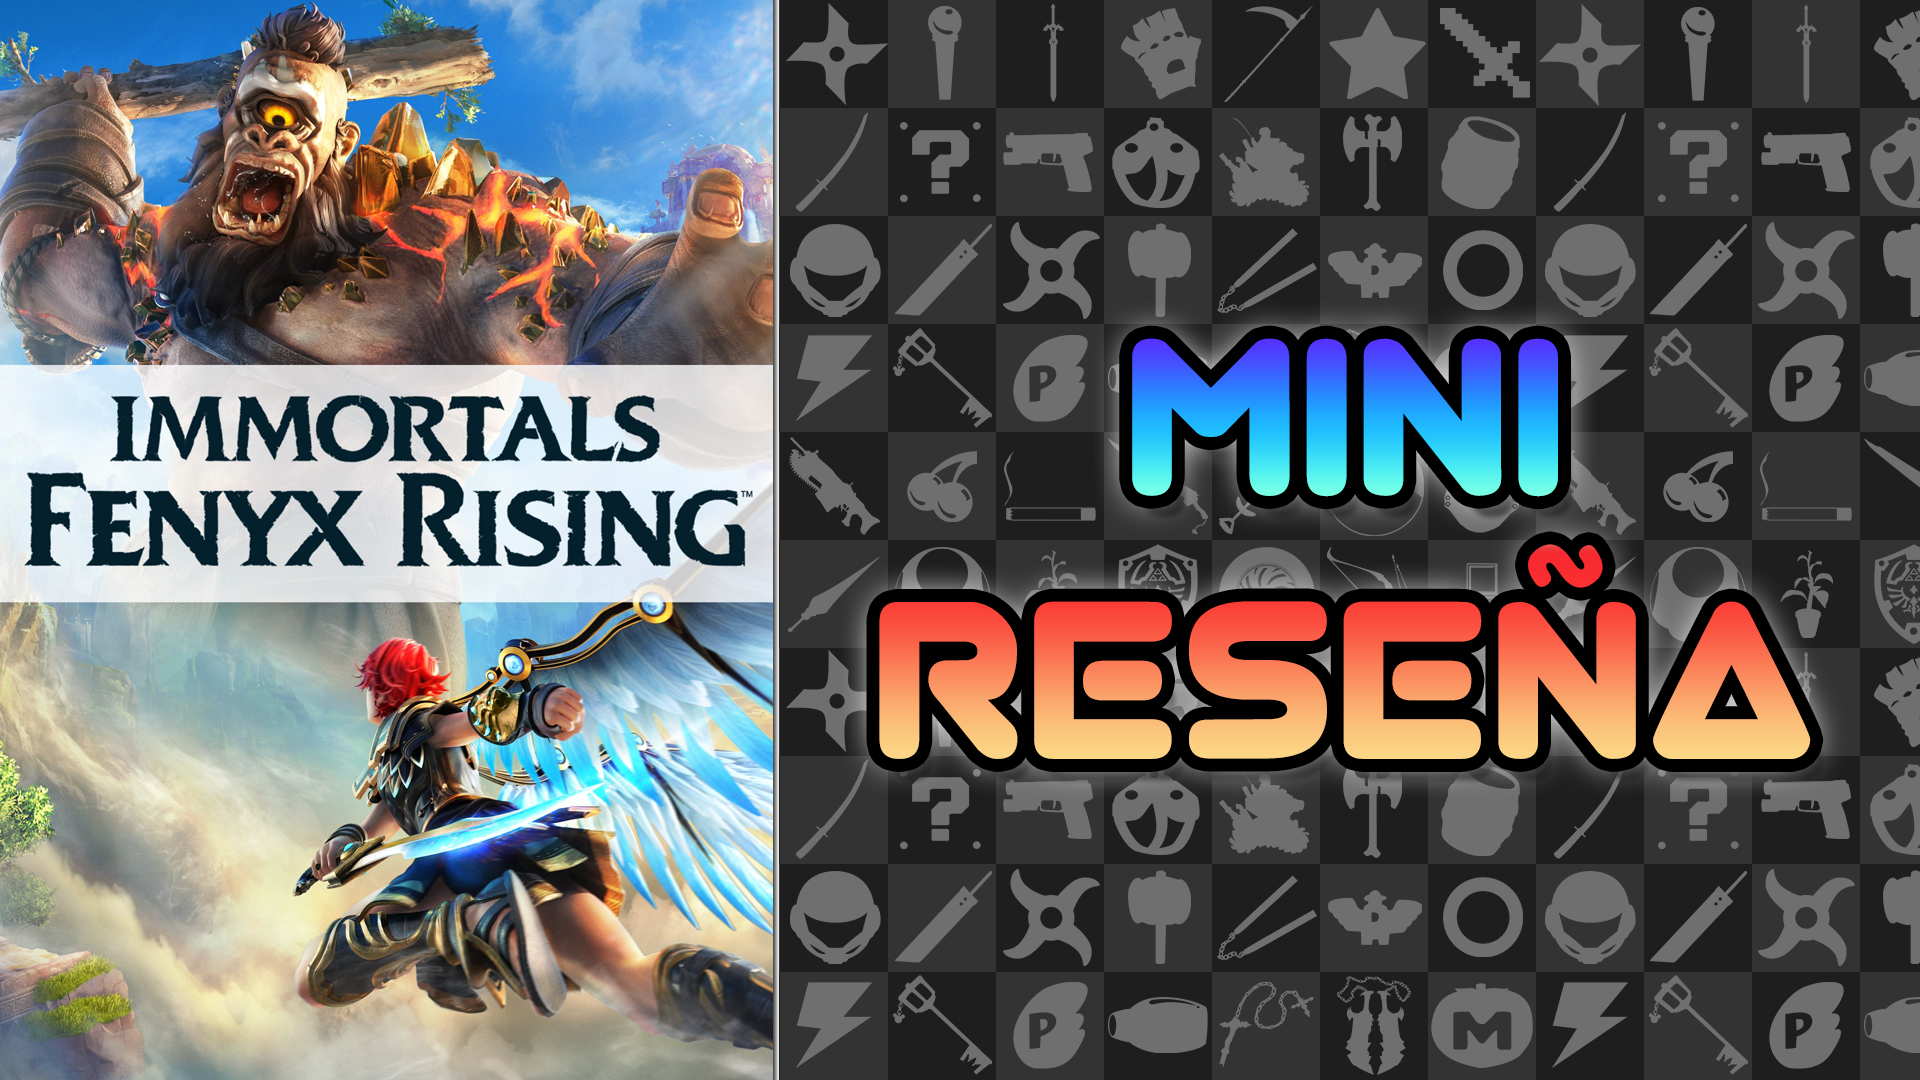 Mini Reseña Immortals Fenyx Rising